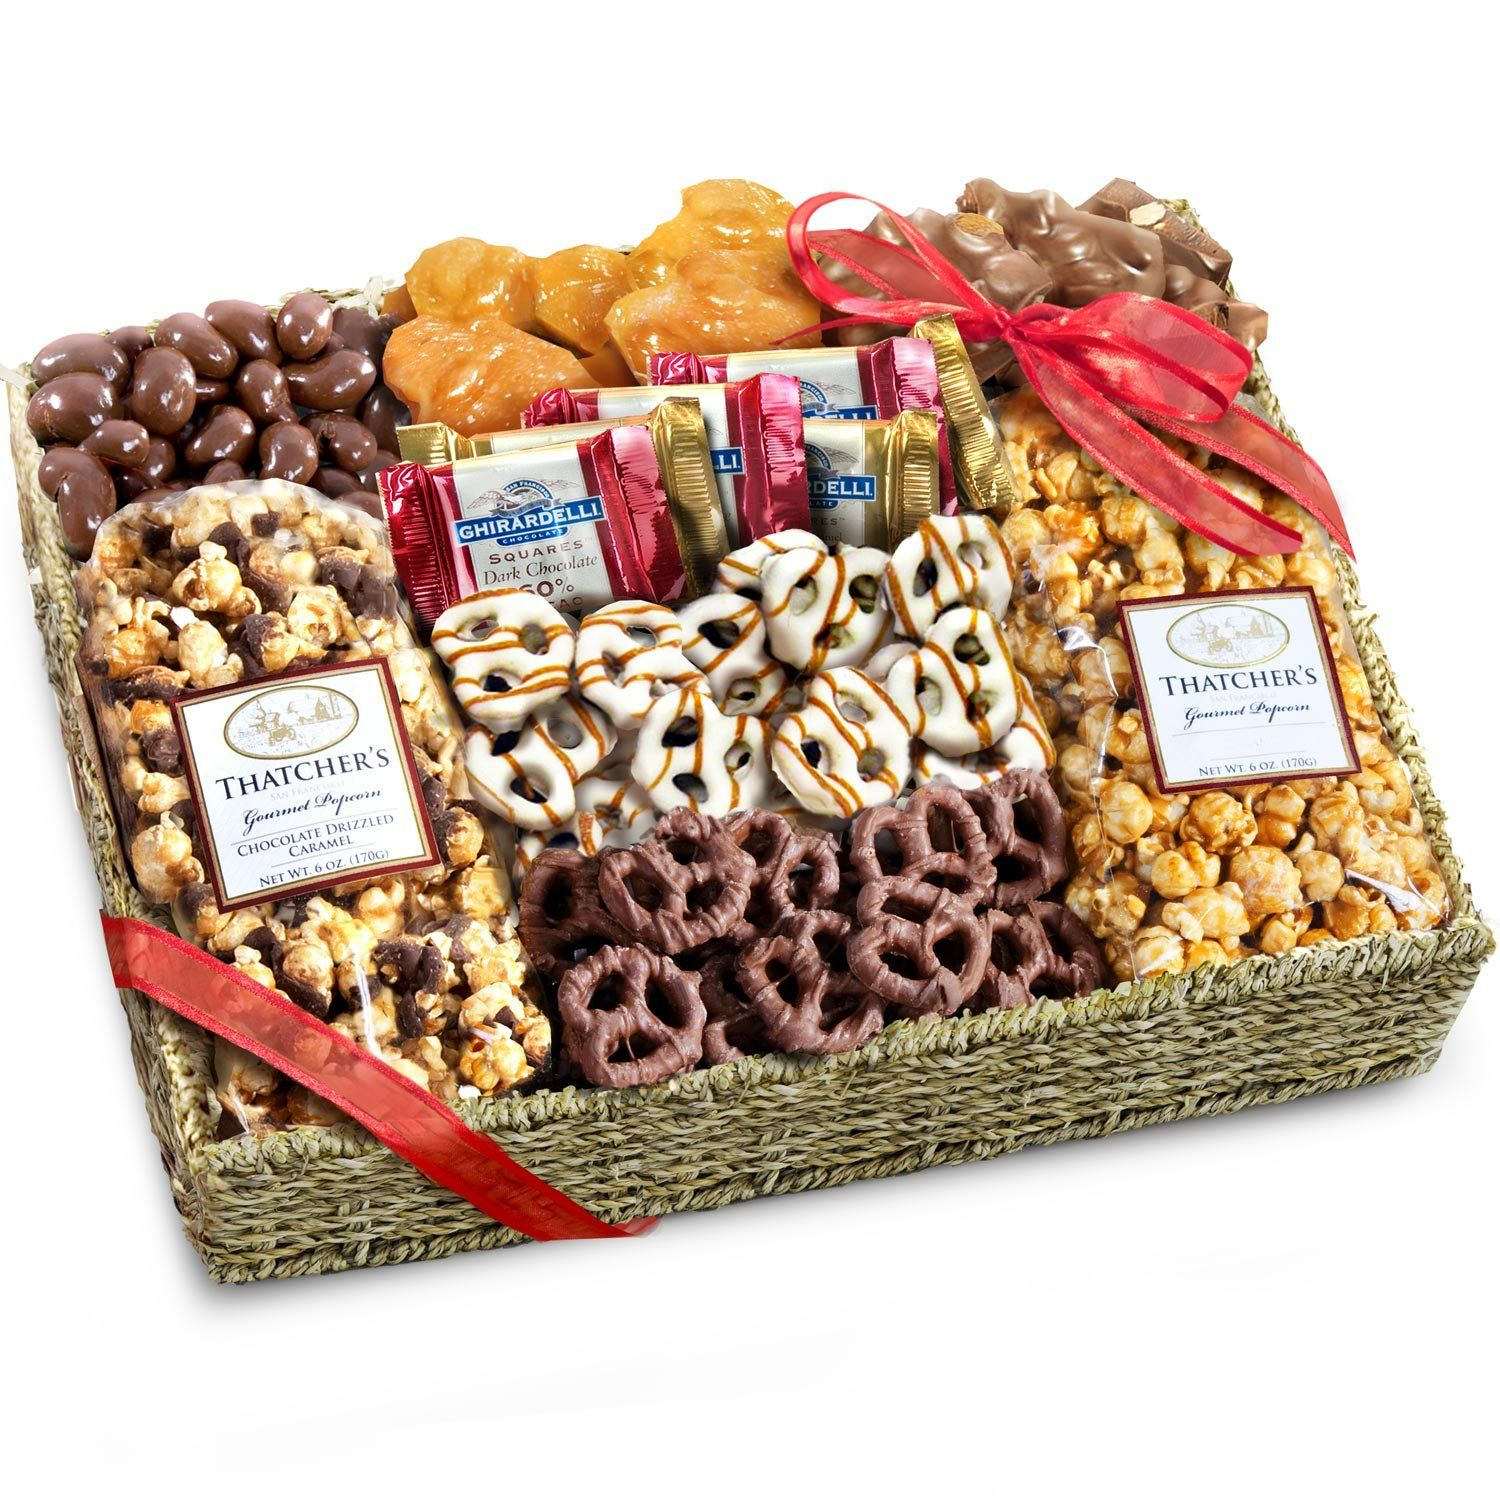 Gift Ideas For Boyfriends Parents Gift Ideas For Boyfriends Parents Chocolate Gifts Basket Food Gift Baskets Snack Gift